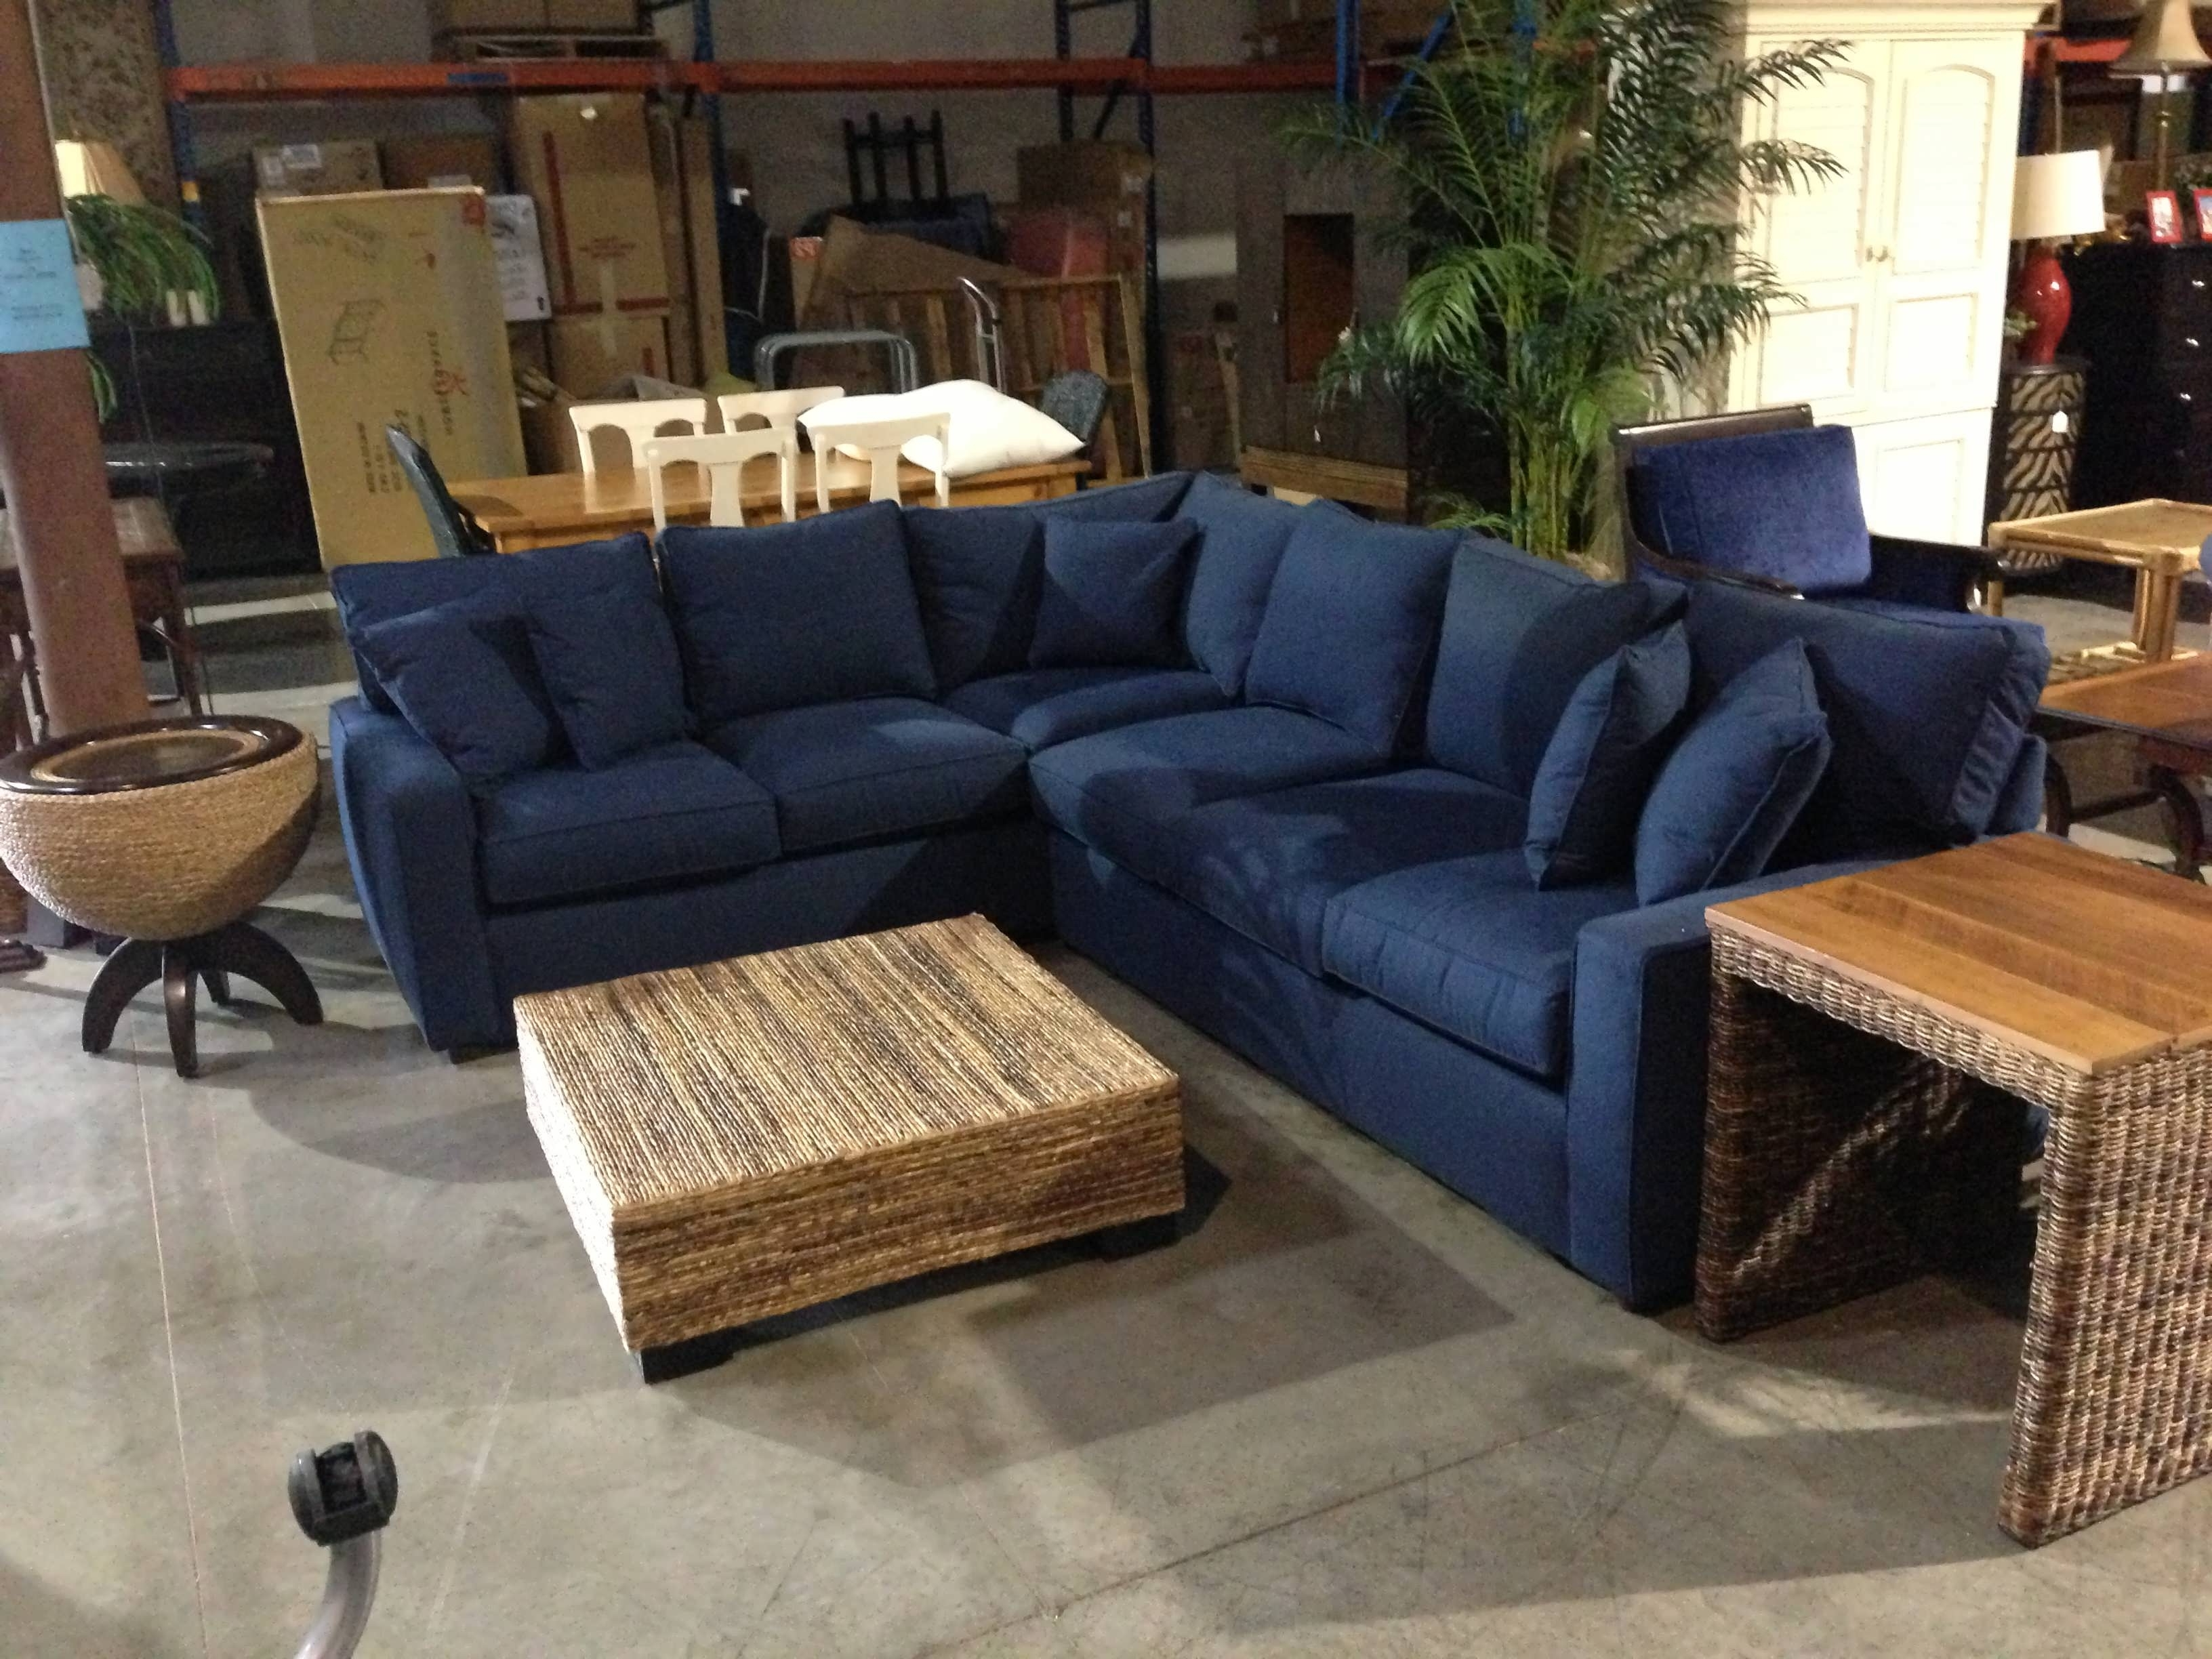 Sofa : 2 Piece Sectional Sofa Lazy Boy Sectional Blue Sectional With Regard To Famous Blue Sectional Sofas With Chaise (View 5 of 15)